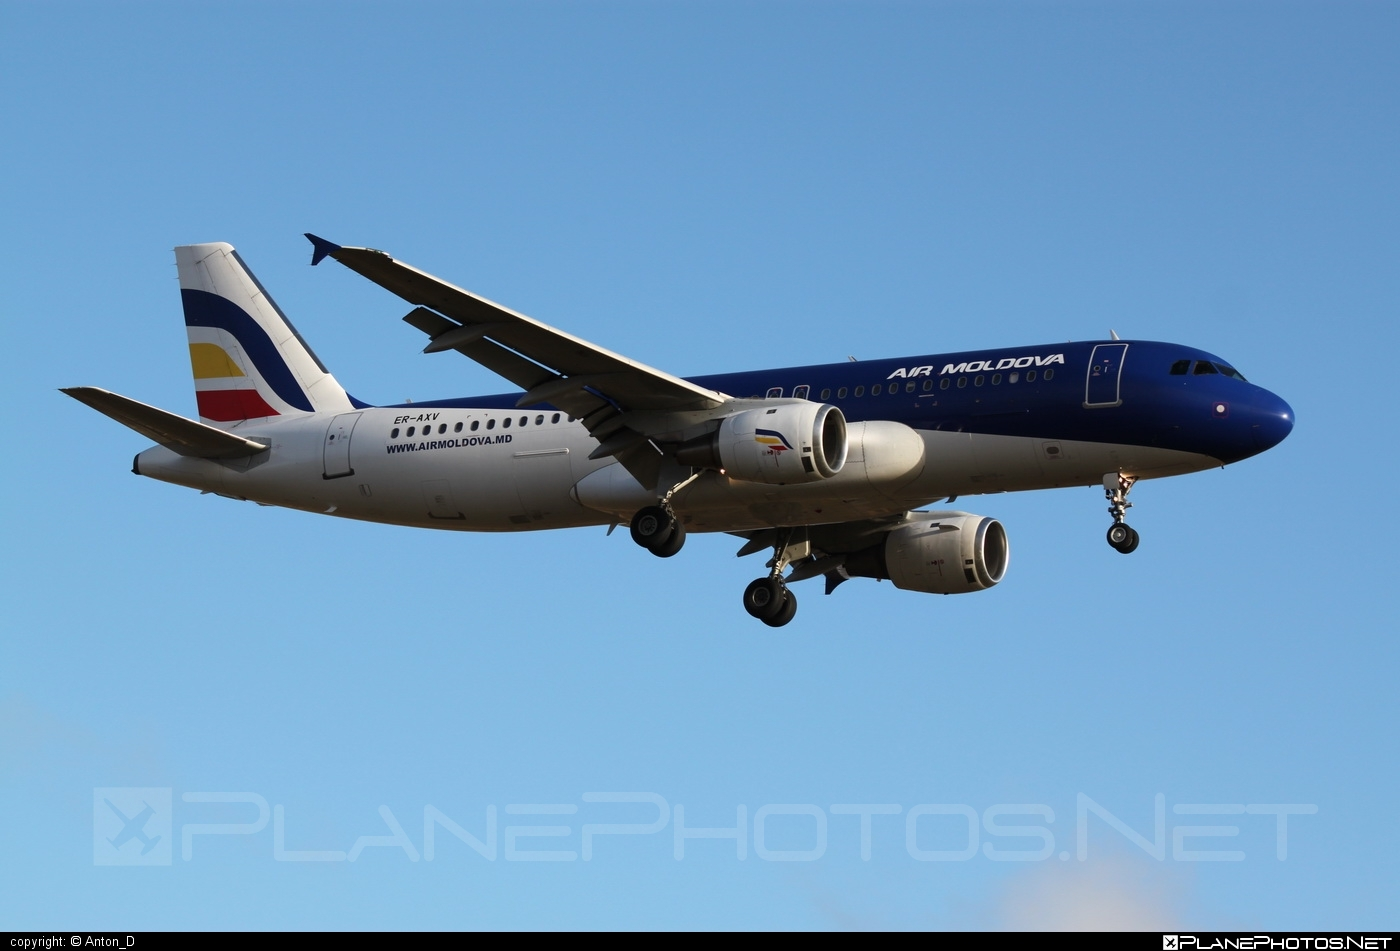 Airbus A320-211 - ER-AXV operated by Air Moldova #a320 #a320family #airbus #airbus320